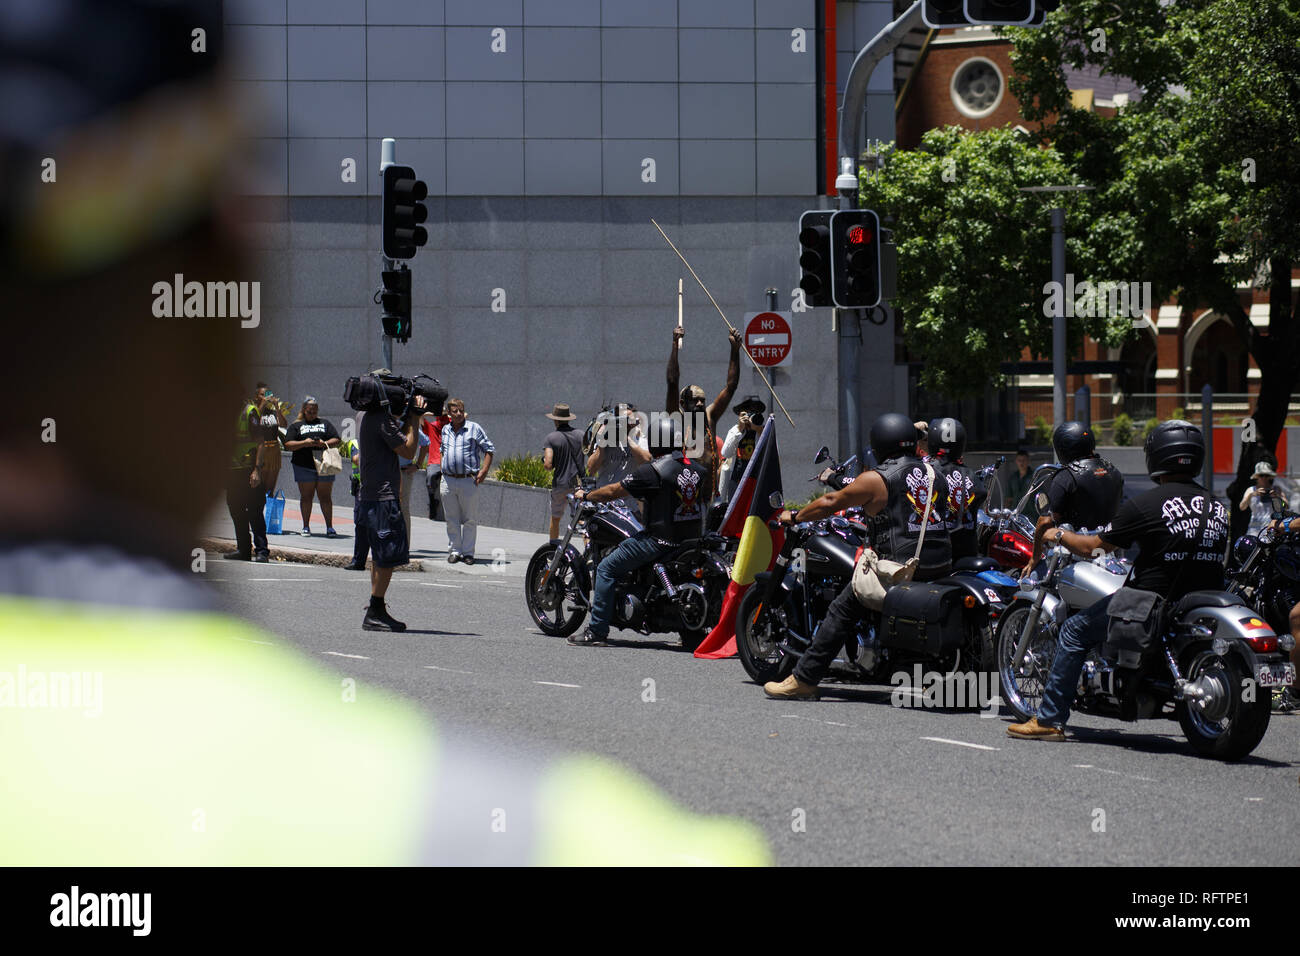 Brisbane, Queensland, Australia. 26th Jan, 2019. Protesters and the Indigenous Riders Club continue the march through the city at the rally on Roma Street. Indigenous protester Kamailie can be seen raising a spear among the crowd. On the 26th of January, many Australians celebrate Australia day, but to many indigenous Australian people, it is a day synonymous with decades of systematic abuse and genocide. Several thousand protesters took the streets in Brisbane (known as Meanjin by local indigenous people) to rally for sovereignty rights and date changes. (Credit Image: © Joshua Prieto/SO - Stock Image